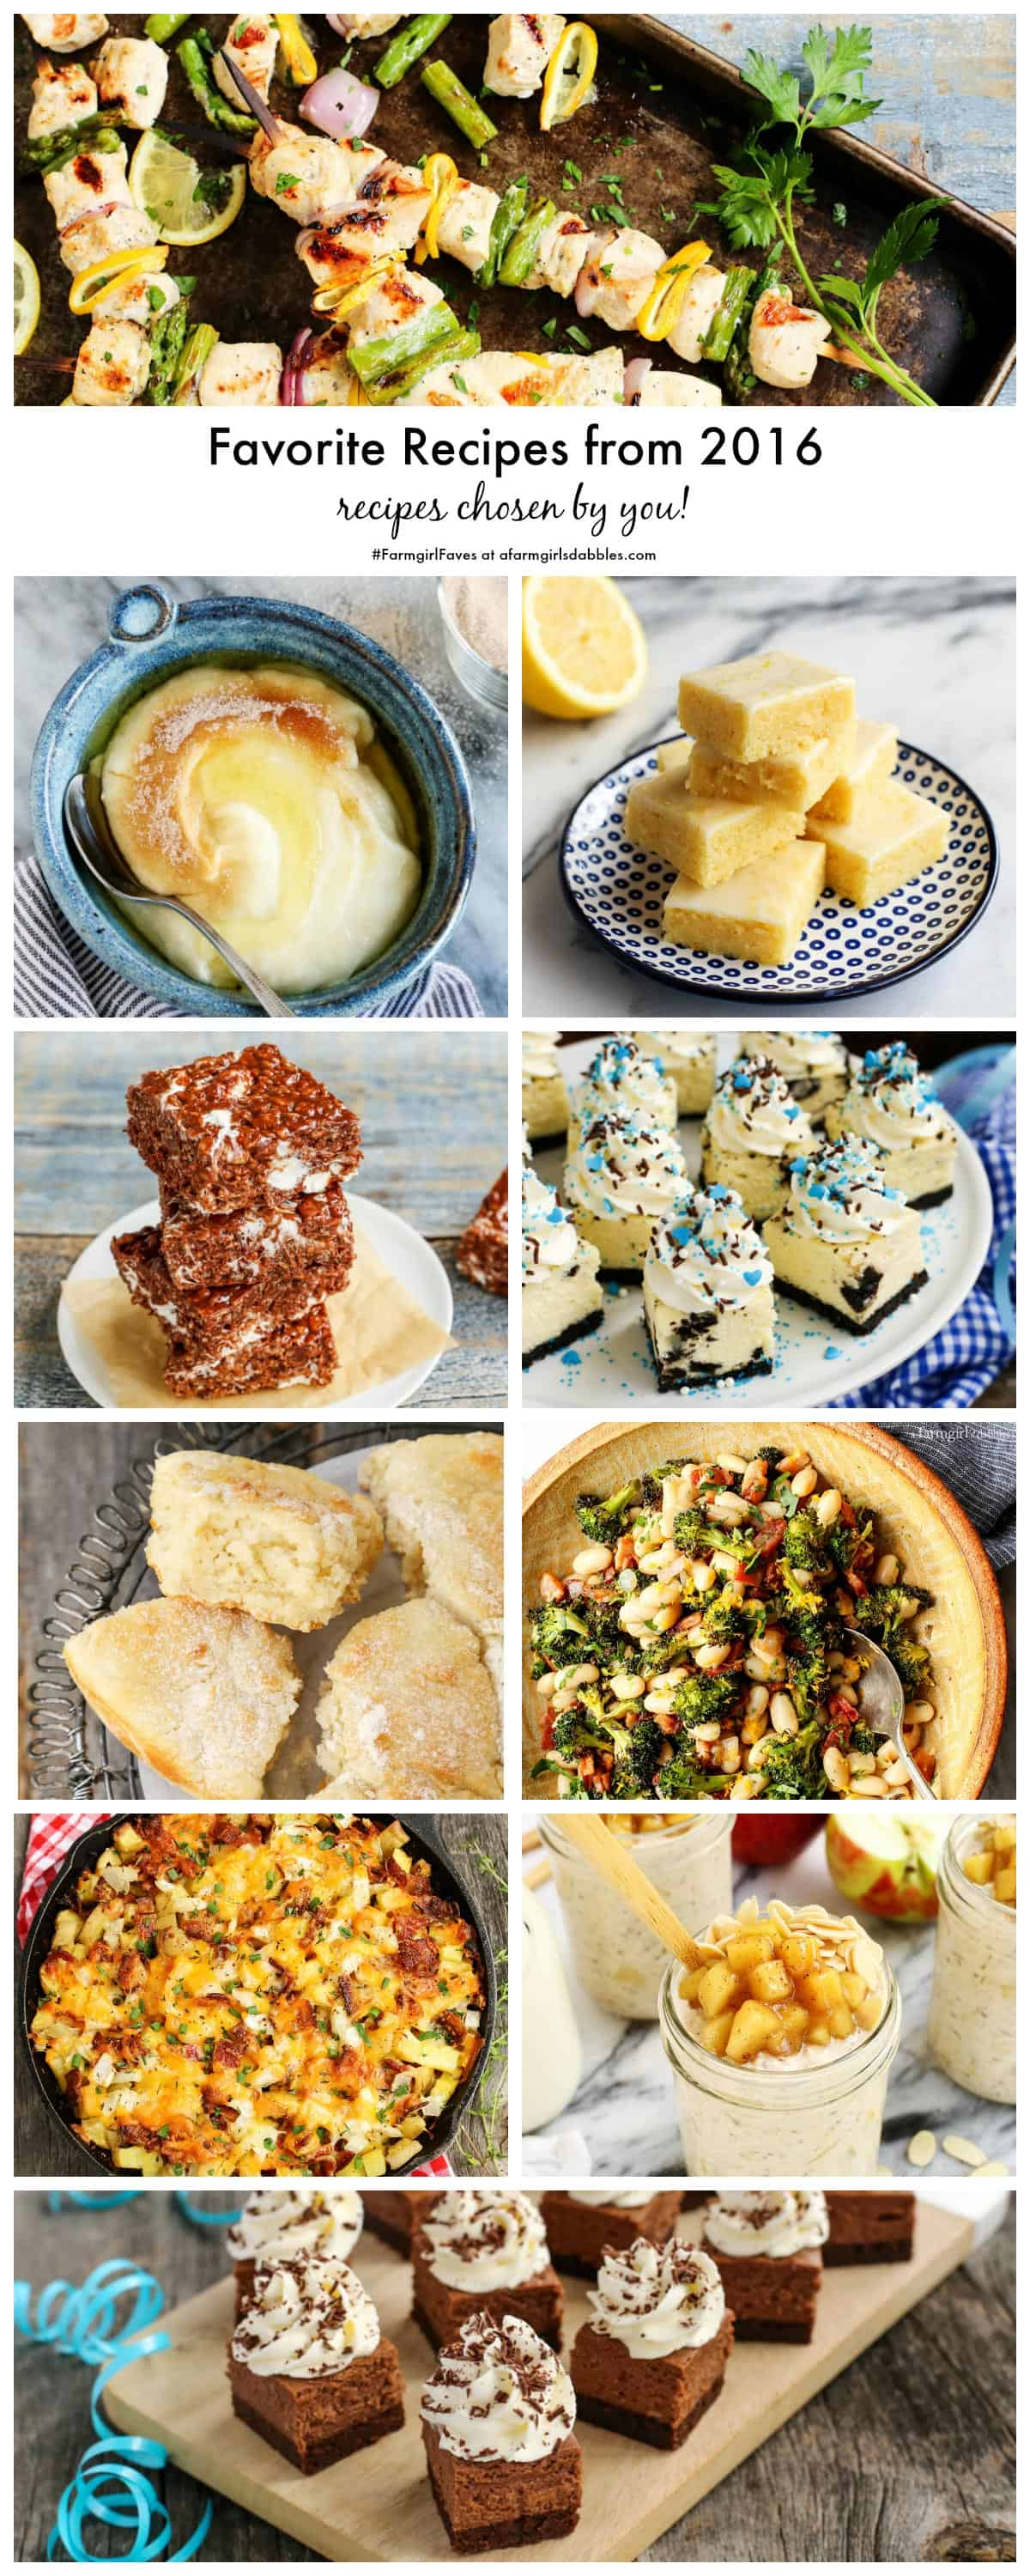 Favorite Recipes from 2016 - recipes chosen by you! - from afarmgirlsdabbles.com